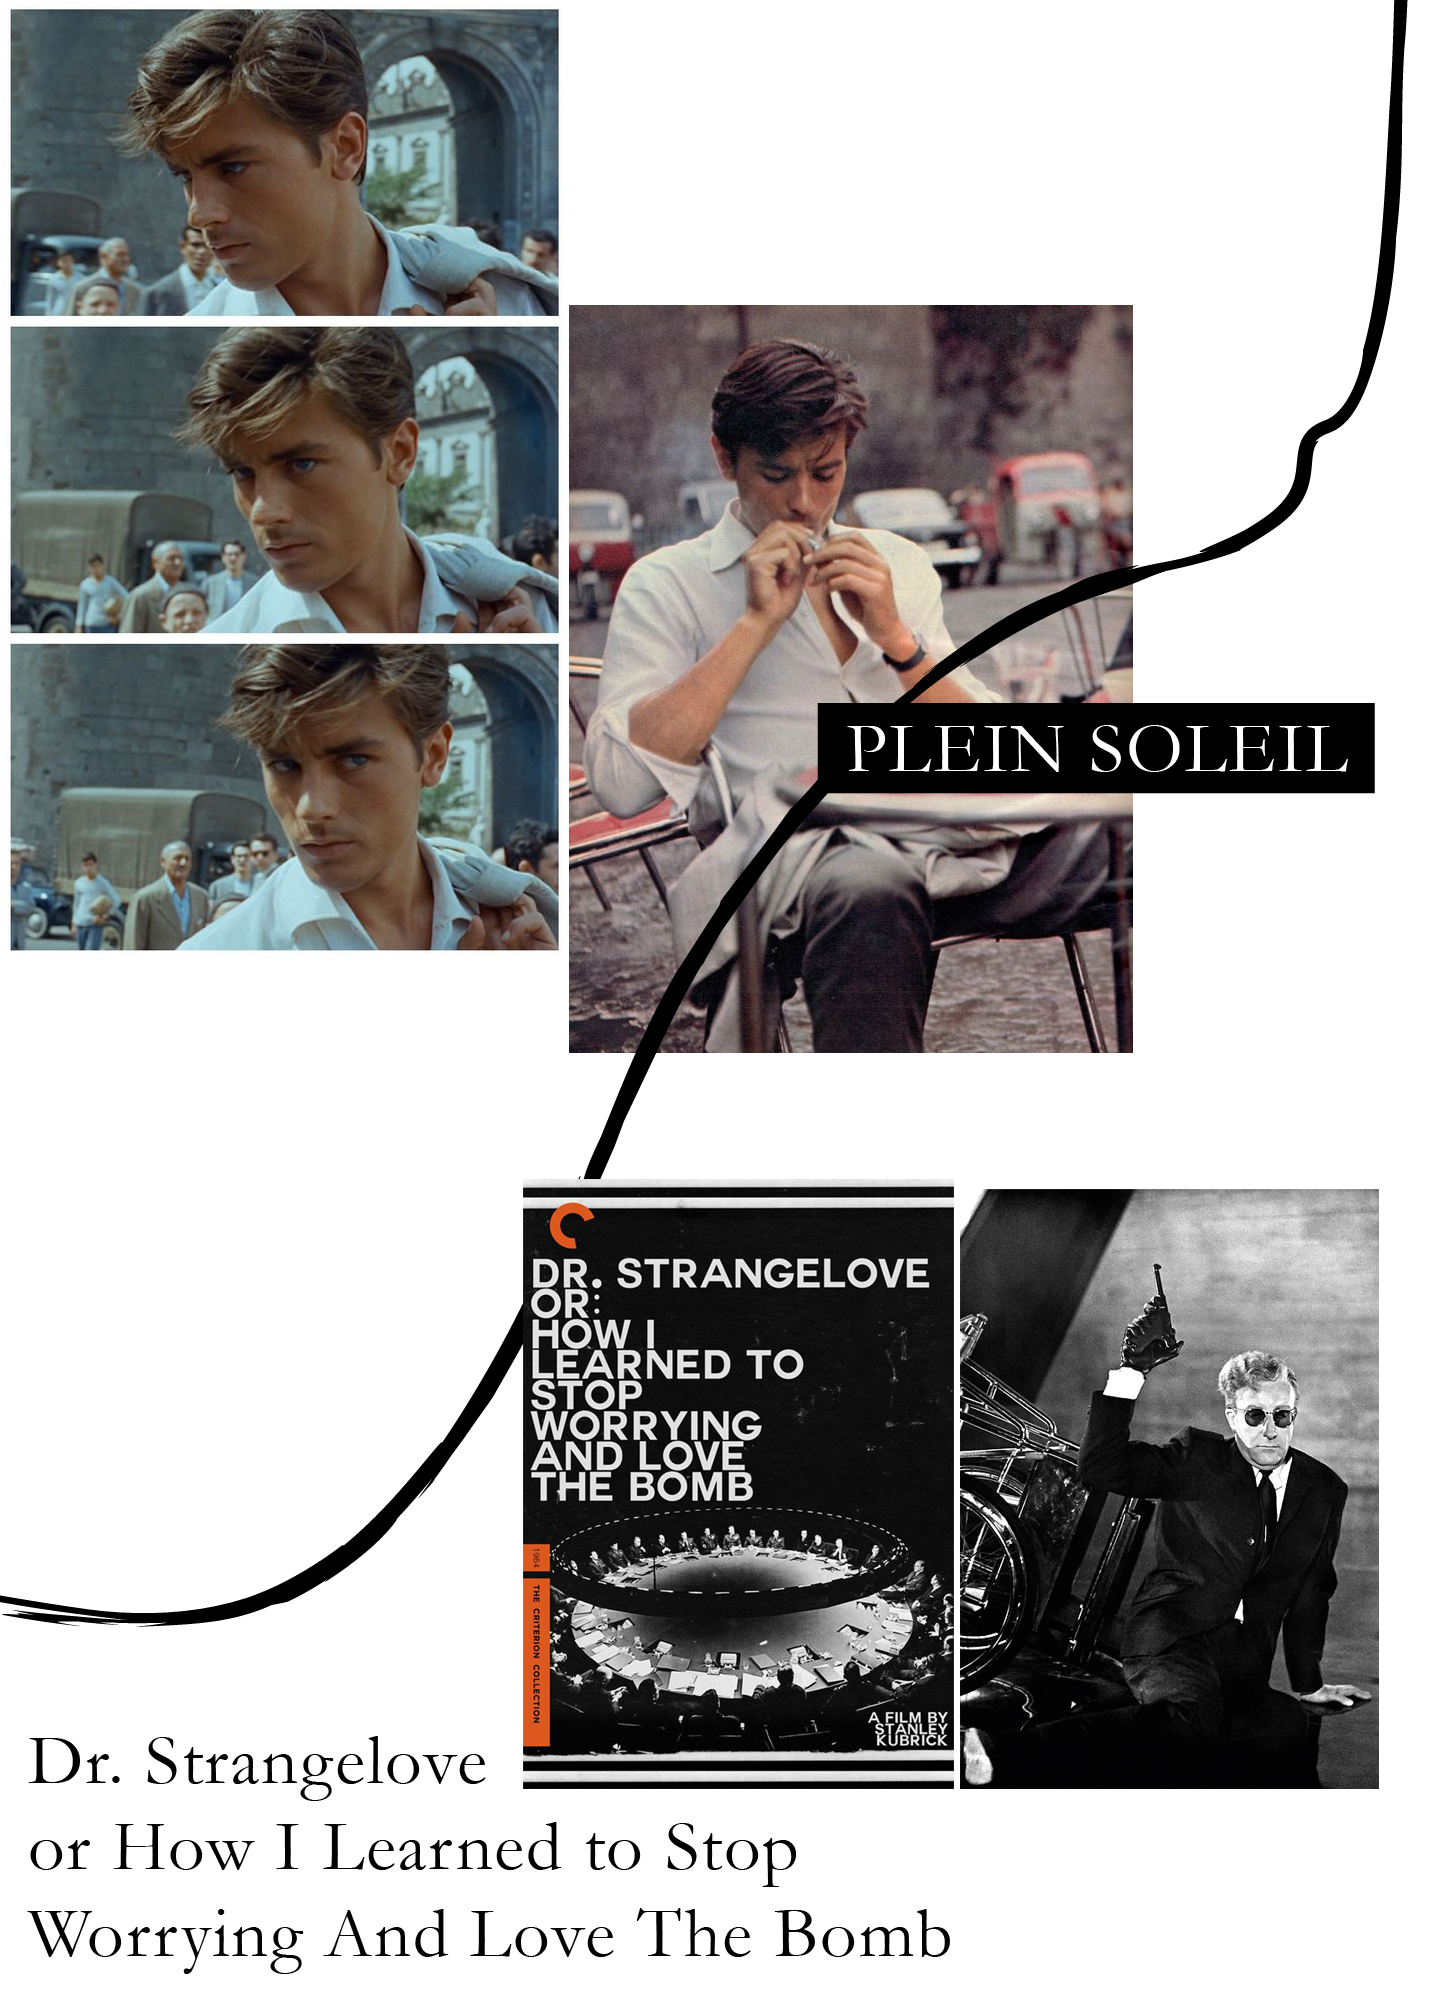 Plein Soleil, Nur die Sonne war Zeuge, Purple Noon, Alain Delon, Dr. Strangelove or how I learned to stop worrying and love the bomb, Stanley Kurick